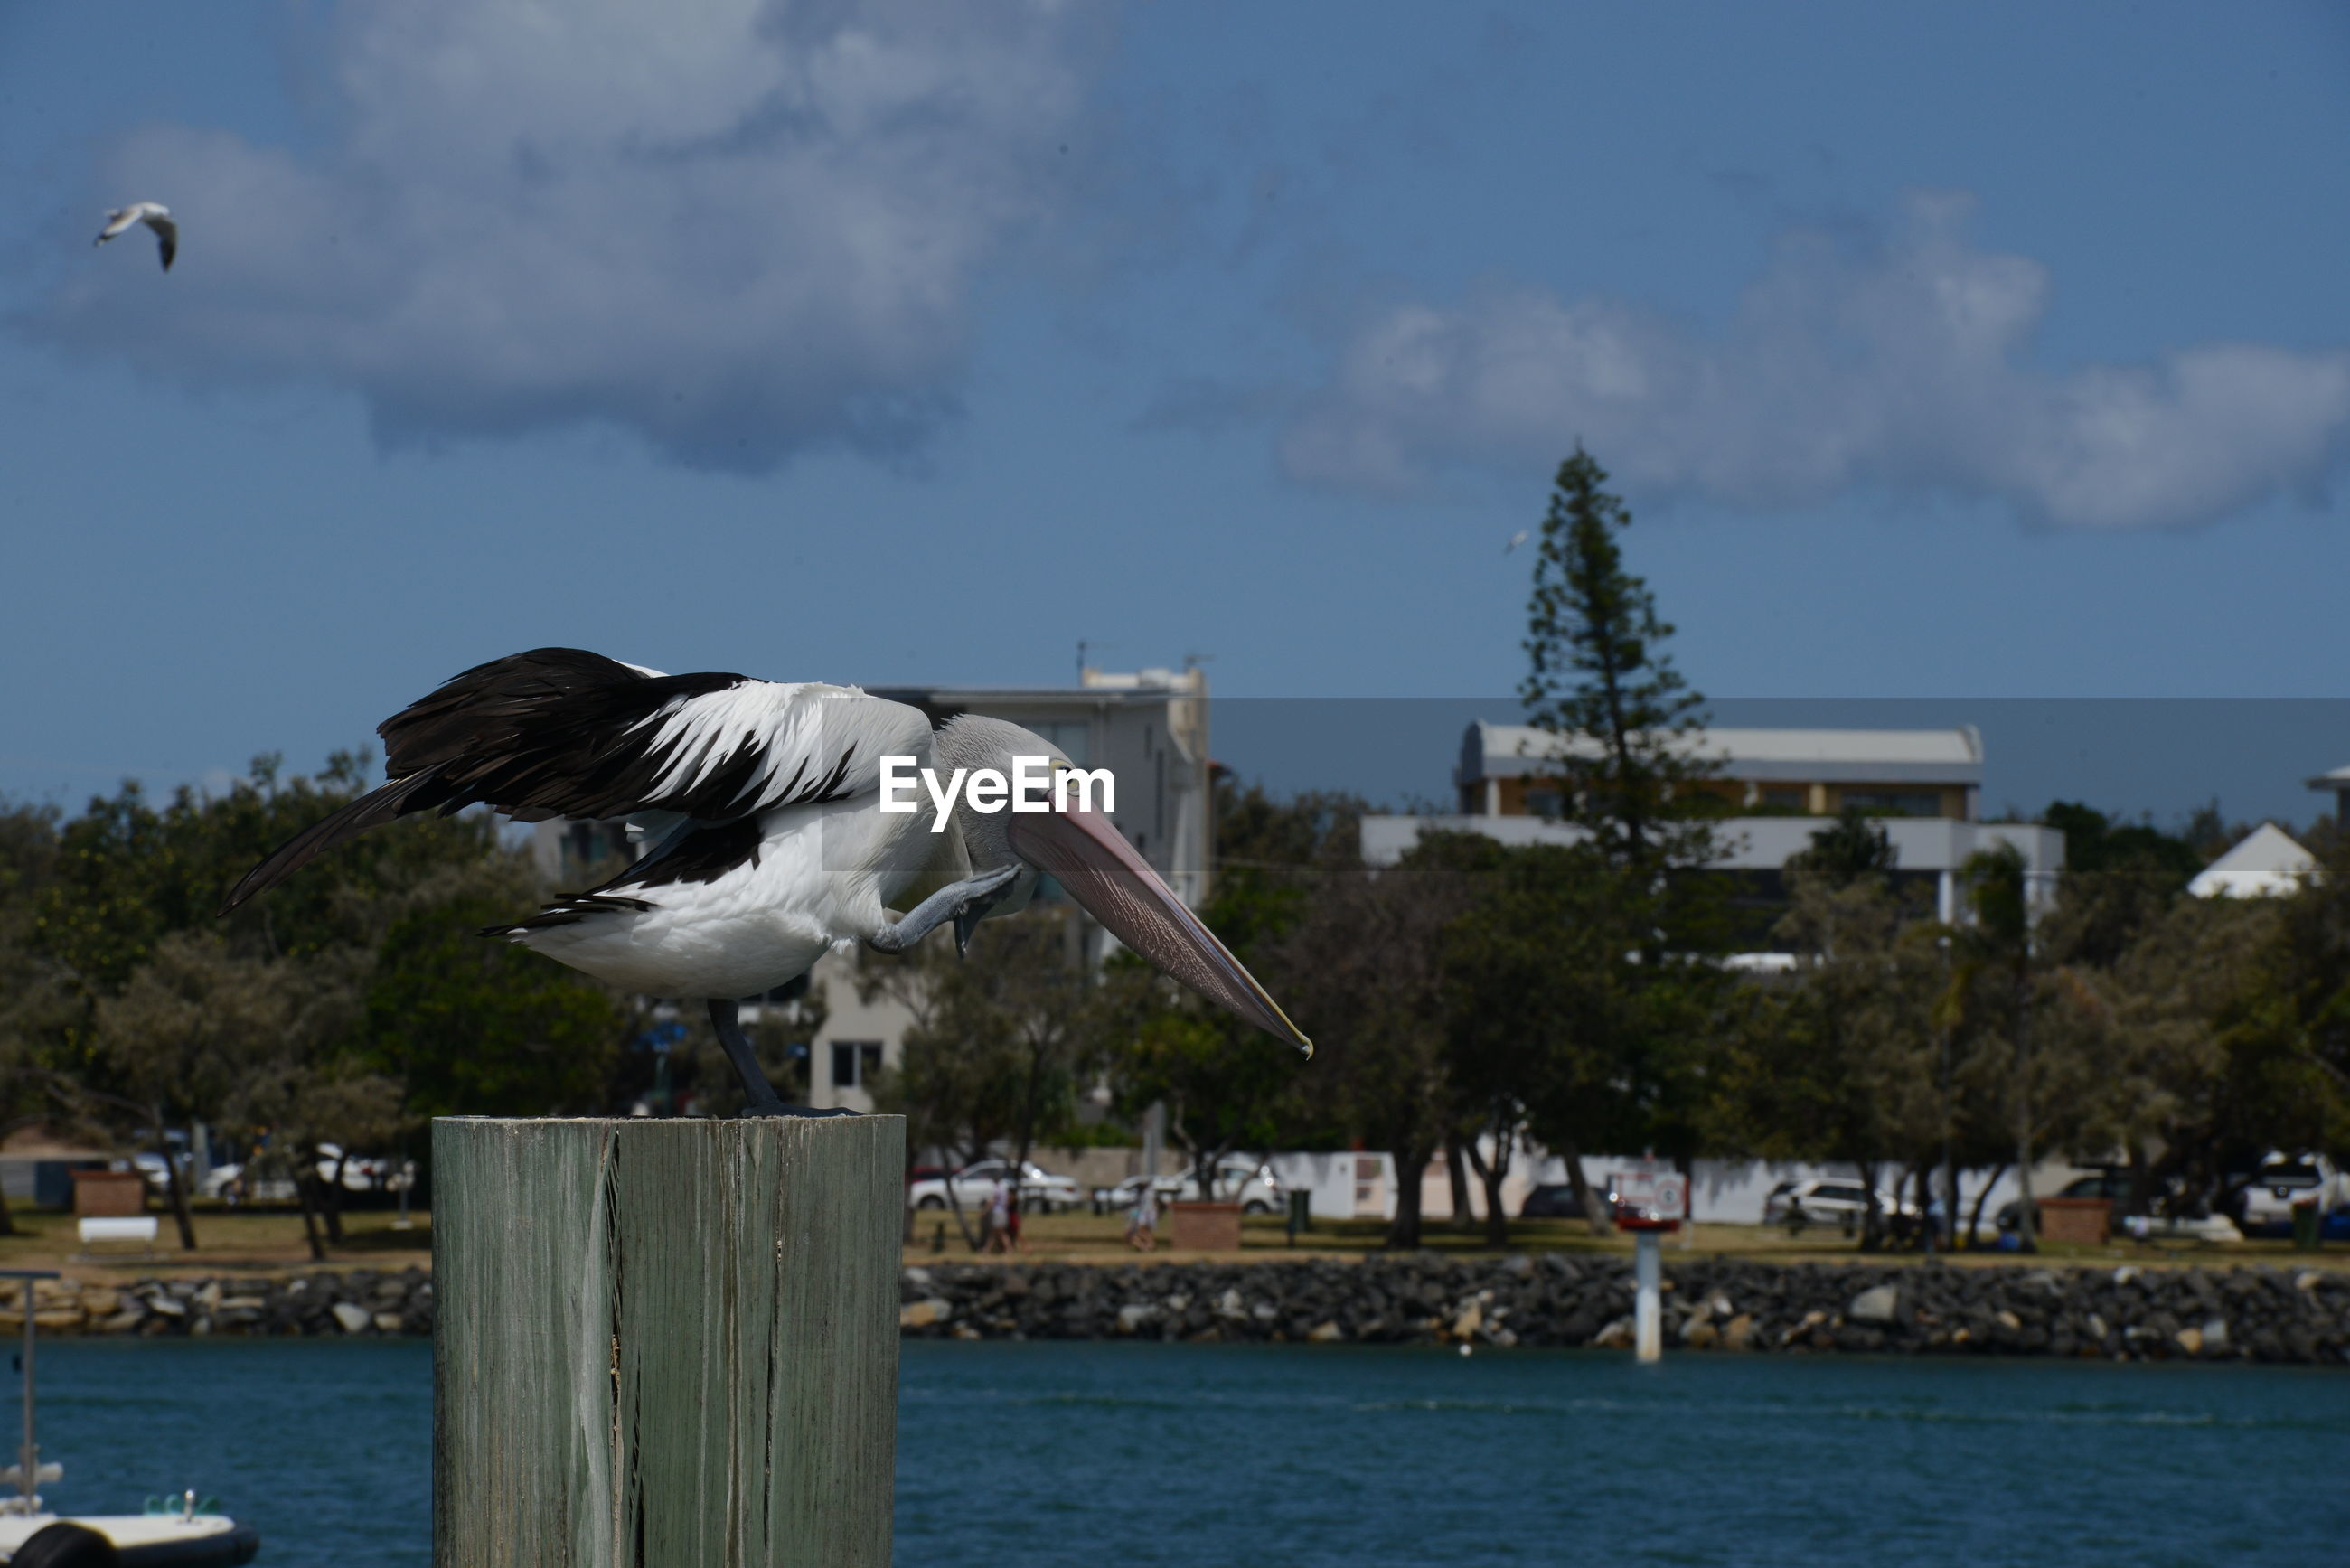 SEAGULL FLYING OVER WOODEN POST